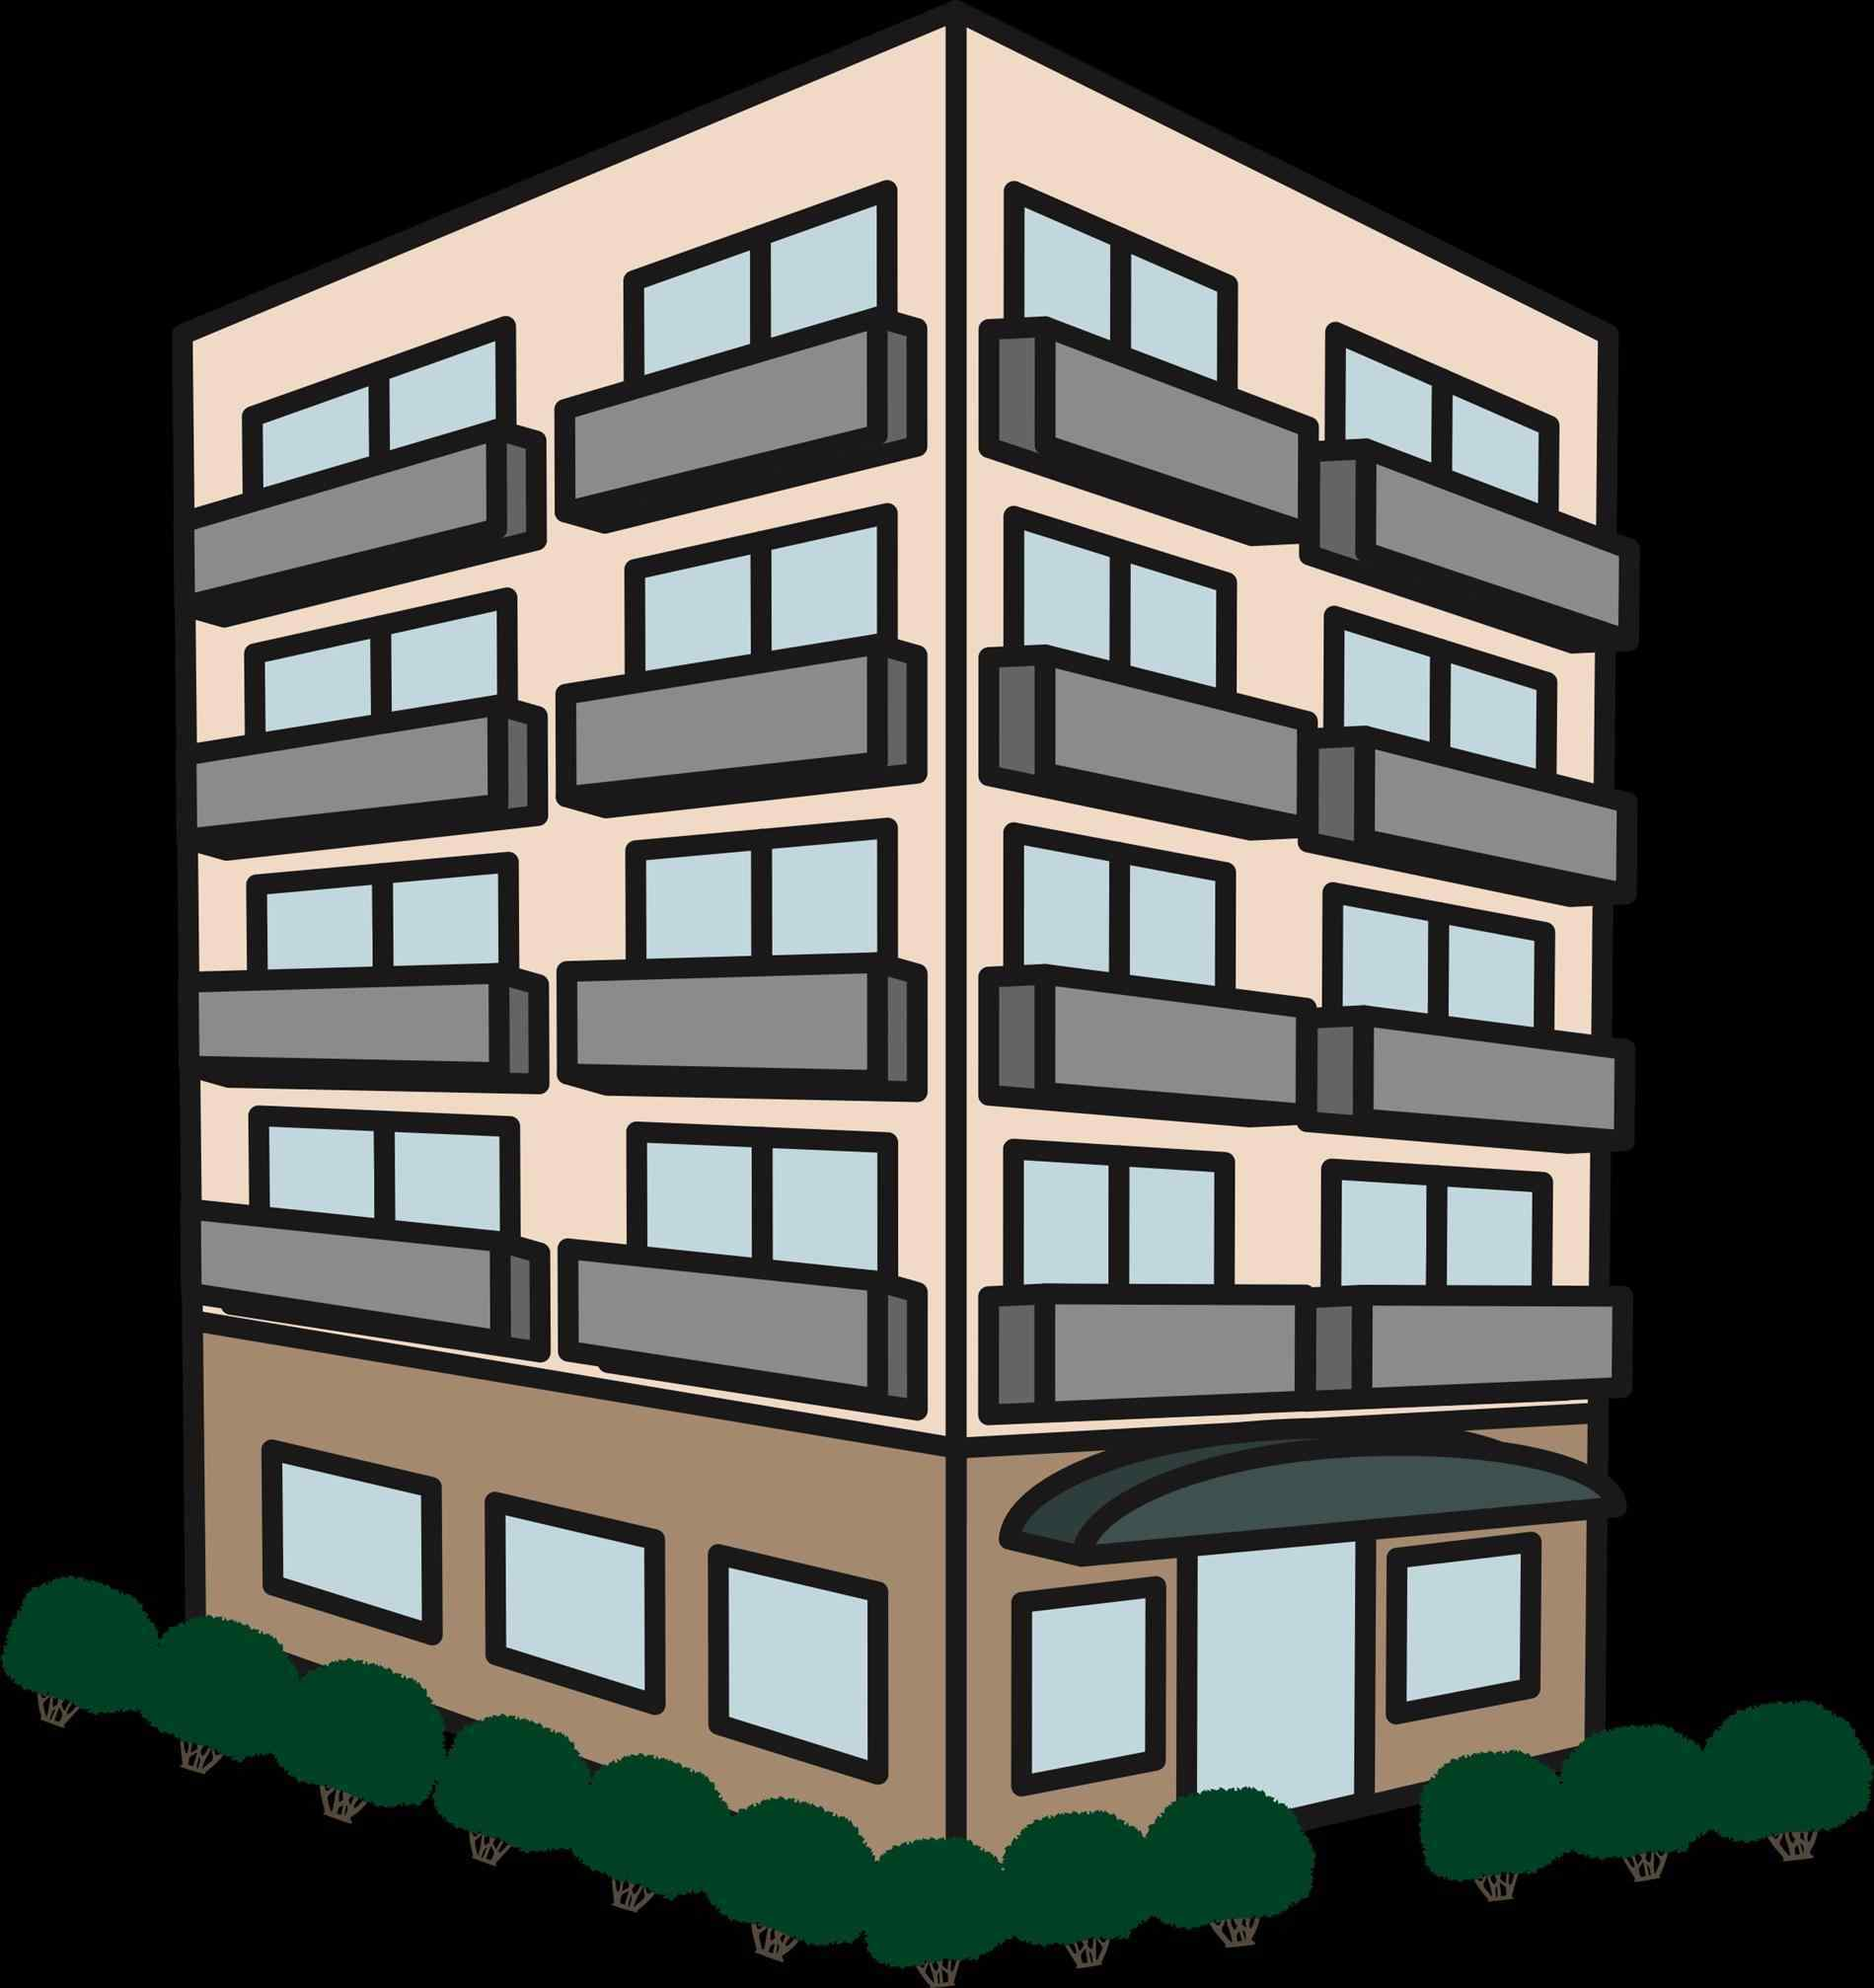 Apartment clipart apt. Apartments athelred com house